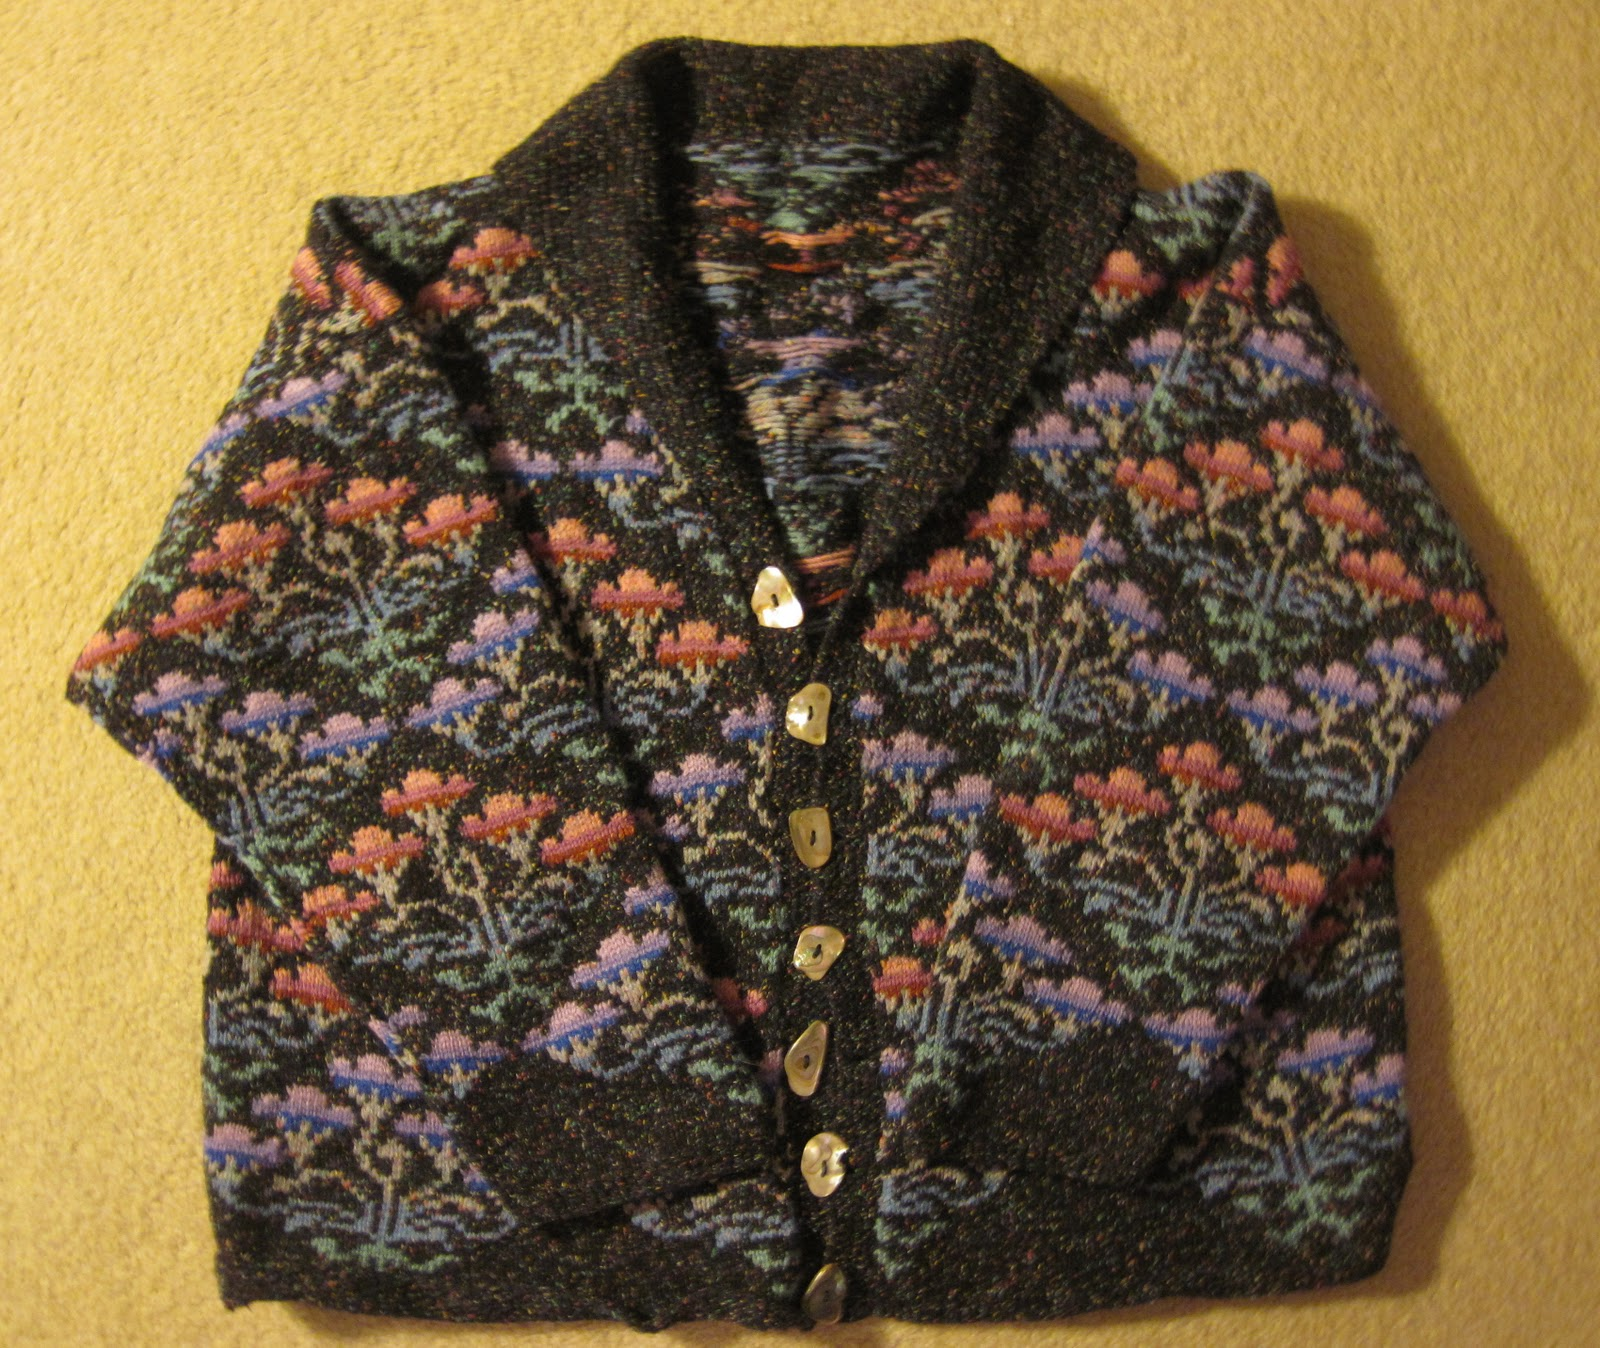 Kaffe Fassett Knitting Kits : Spinsjal chinese rose jacket redux